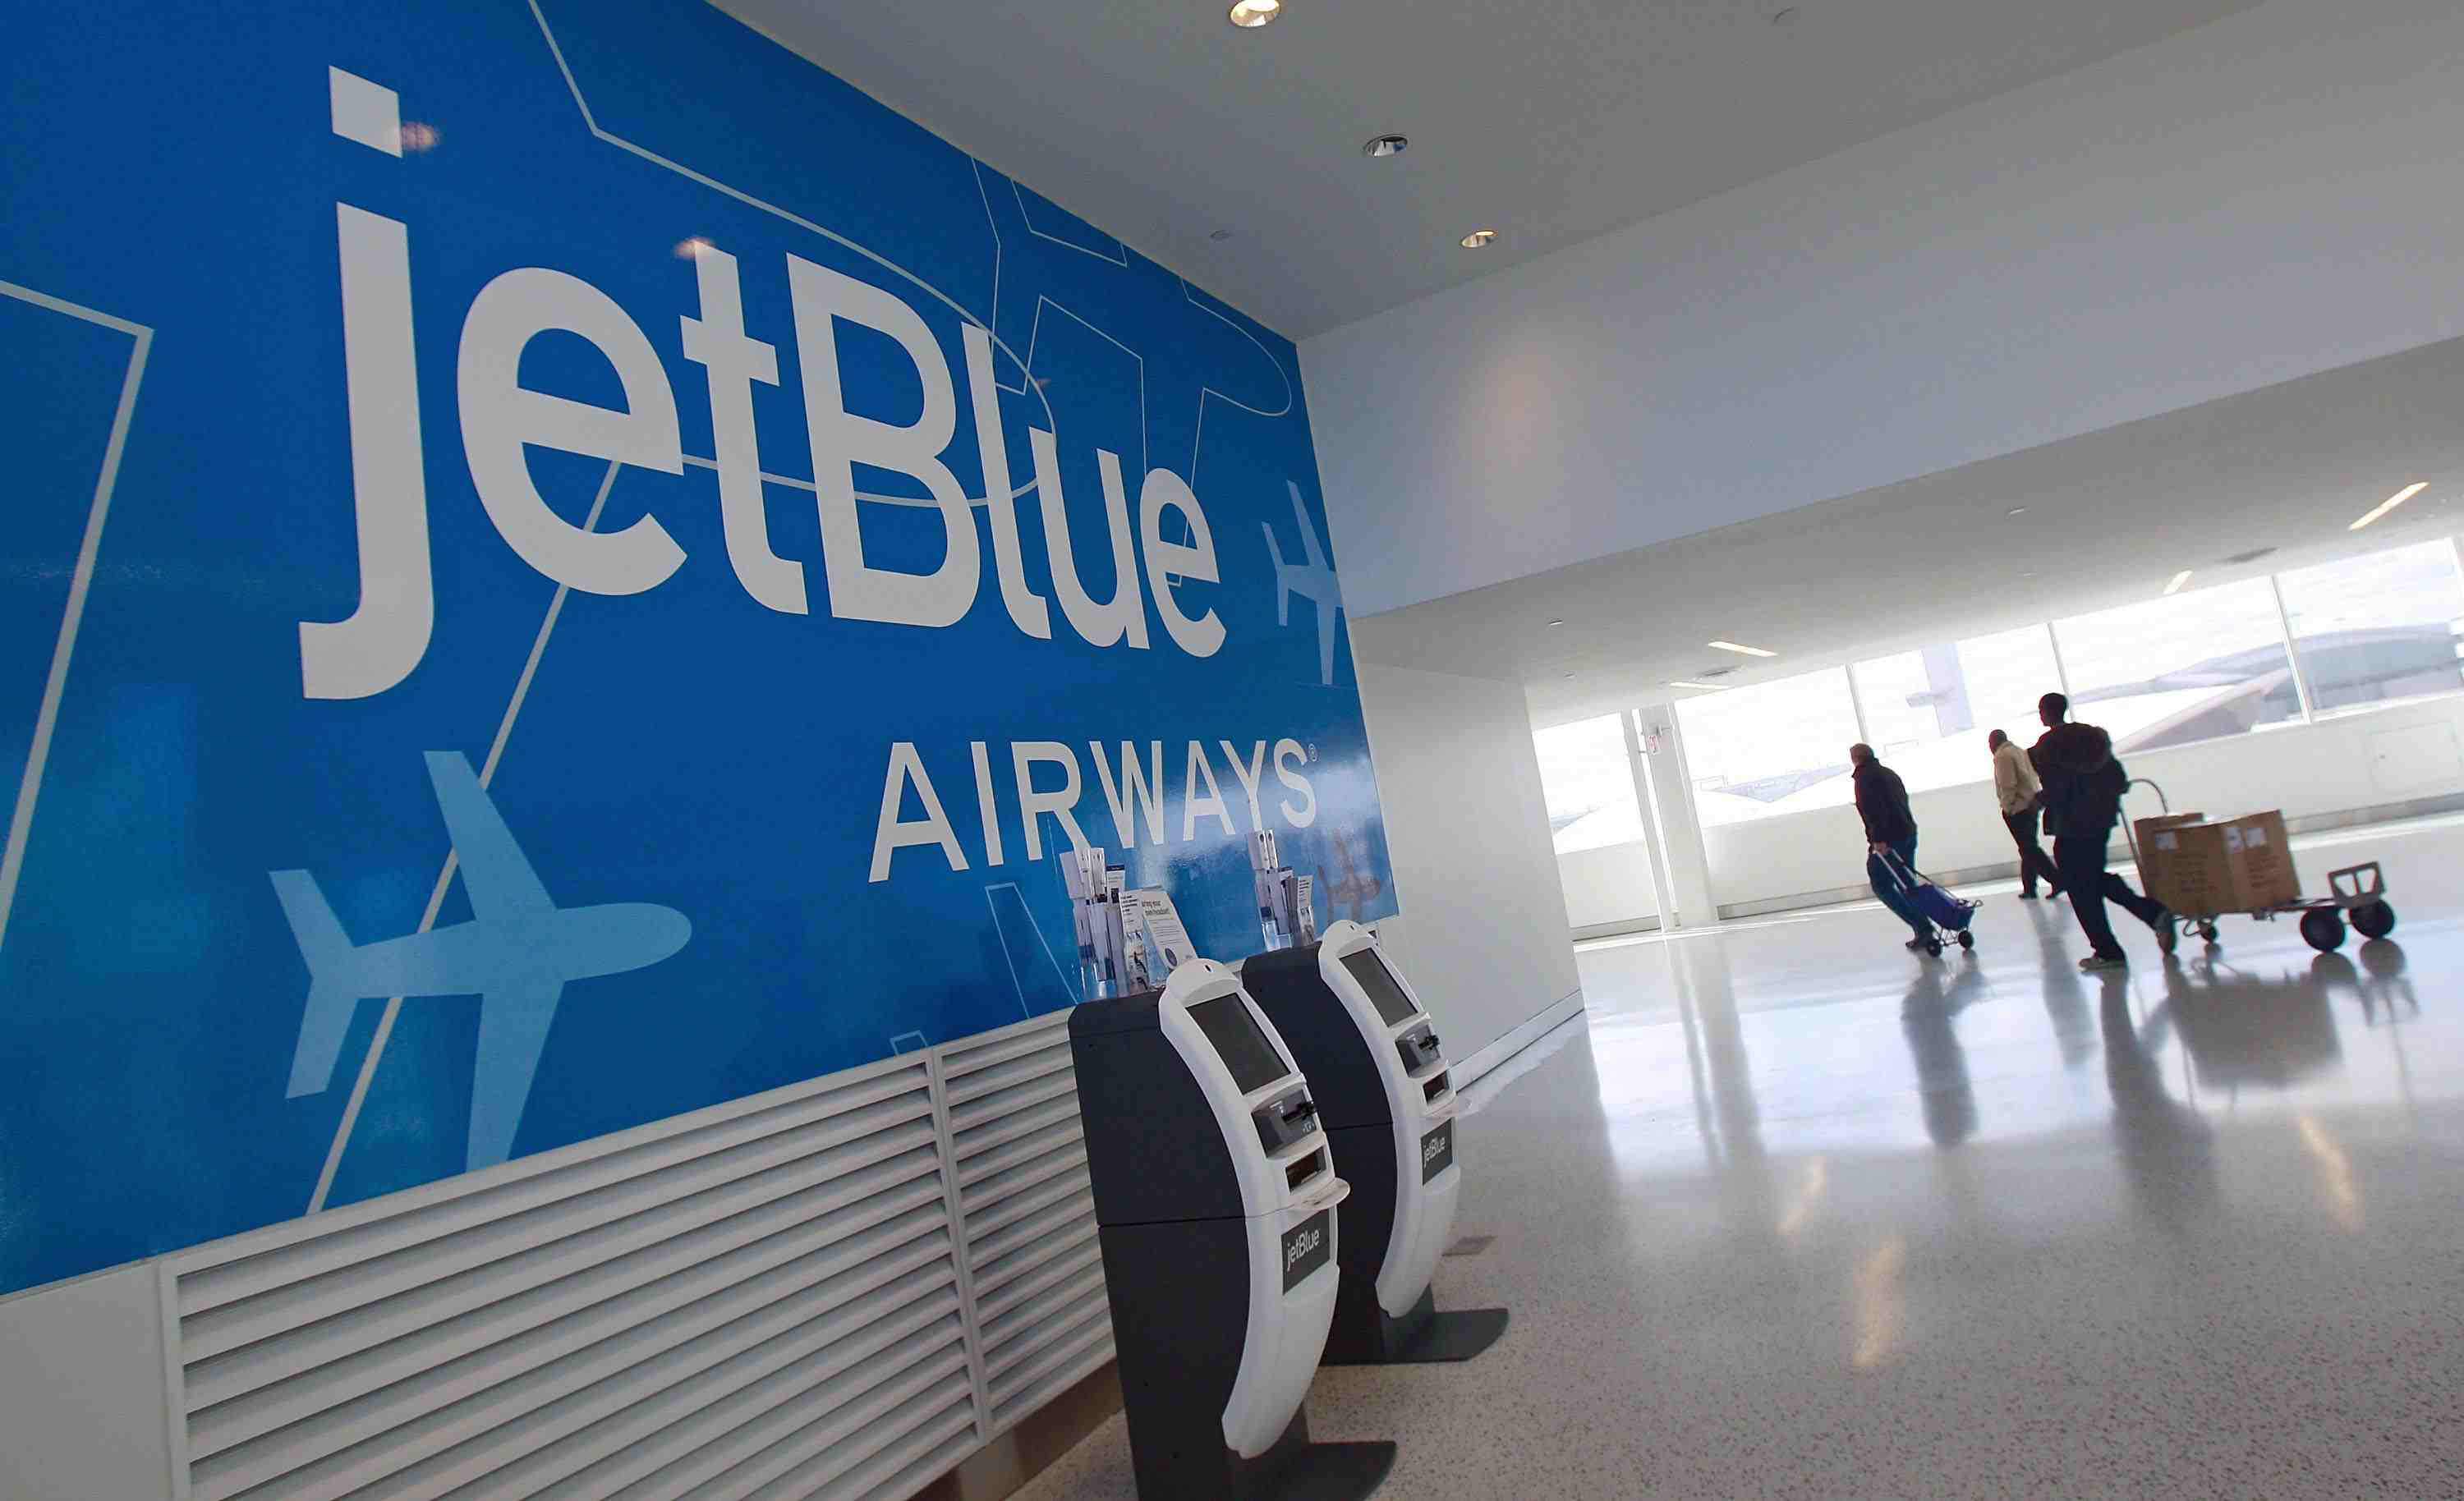 JetBlue signage at an airport